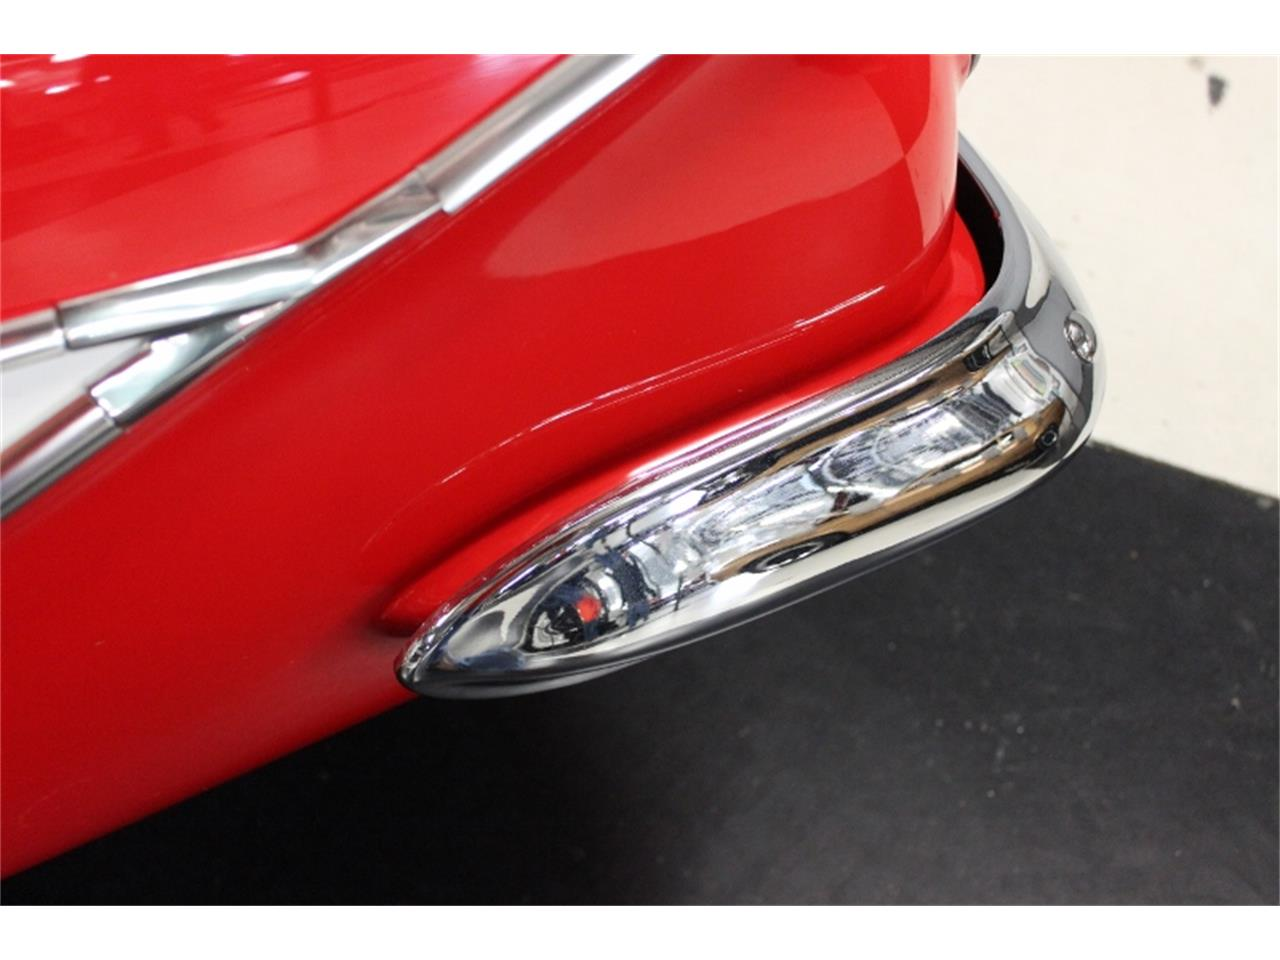 Large Picture of 1961 Impala located in North Carolina - $58,000.00 - J60W